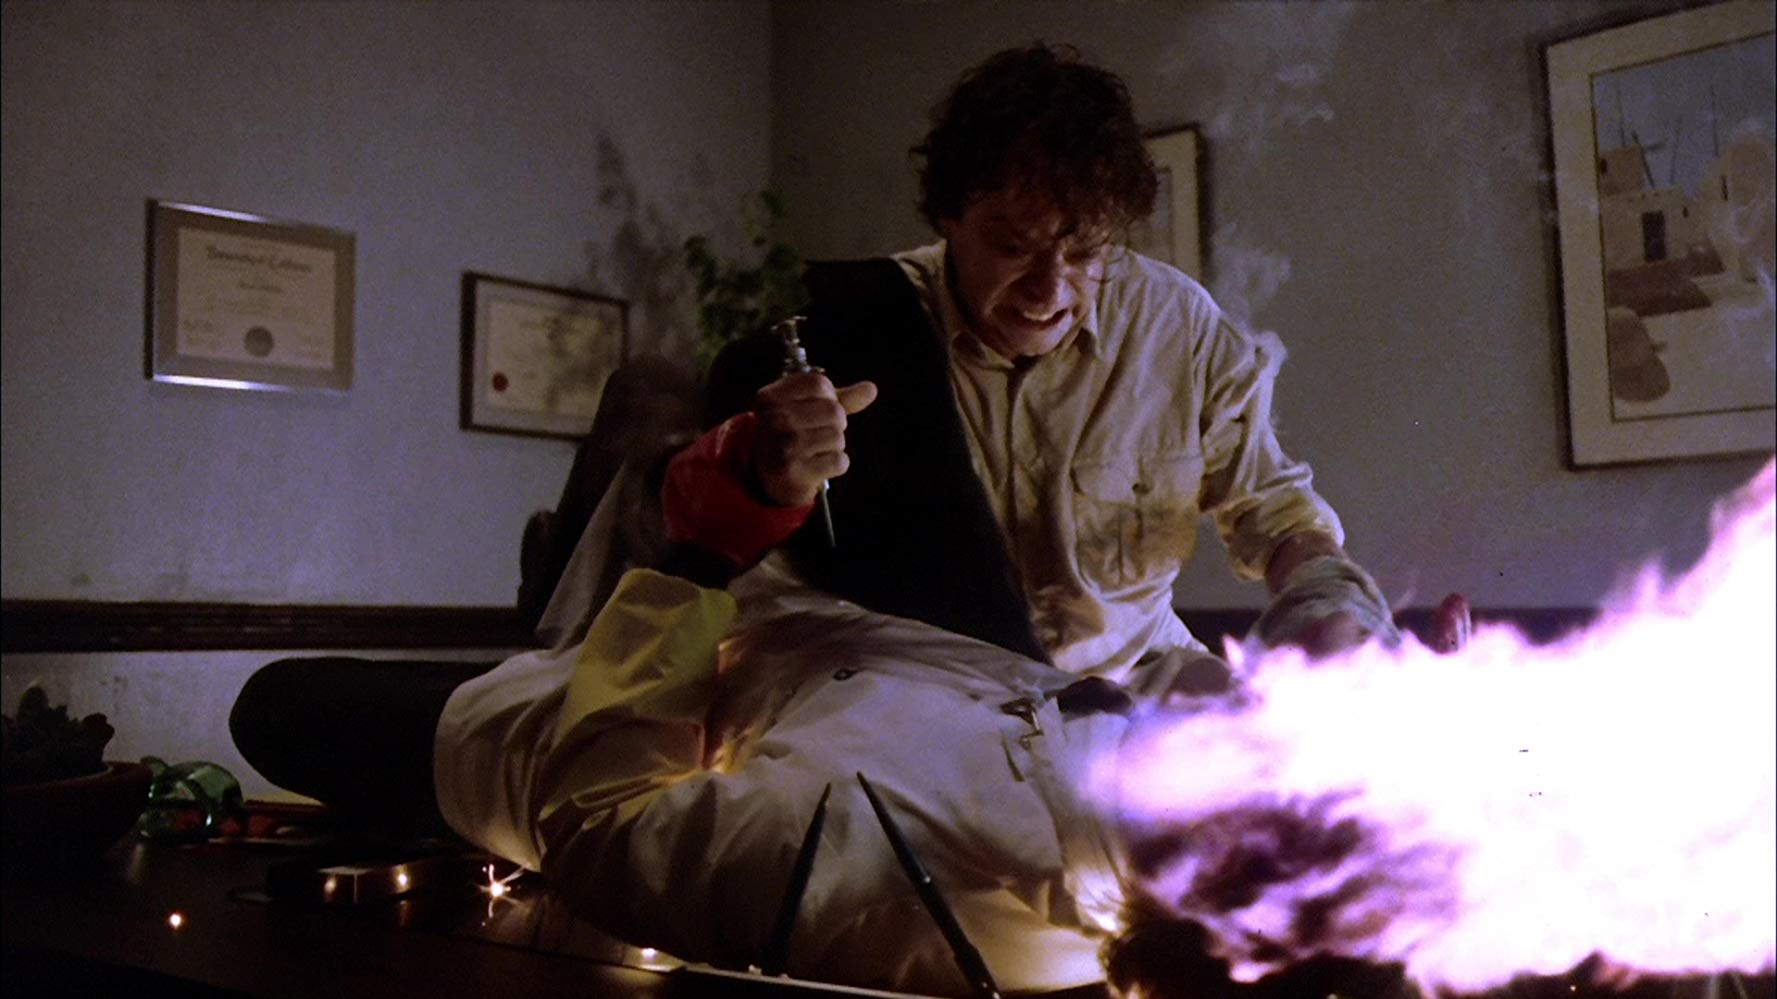 Pyrokinetic Brad Dourif causes a victim's head to explode in Spontaneous Combustion (1990)